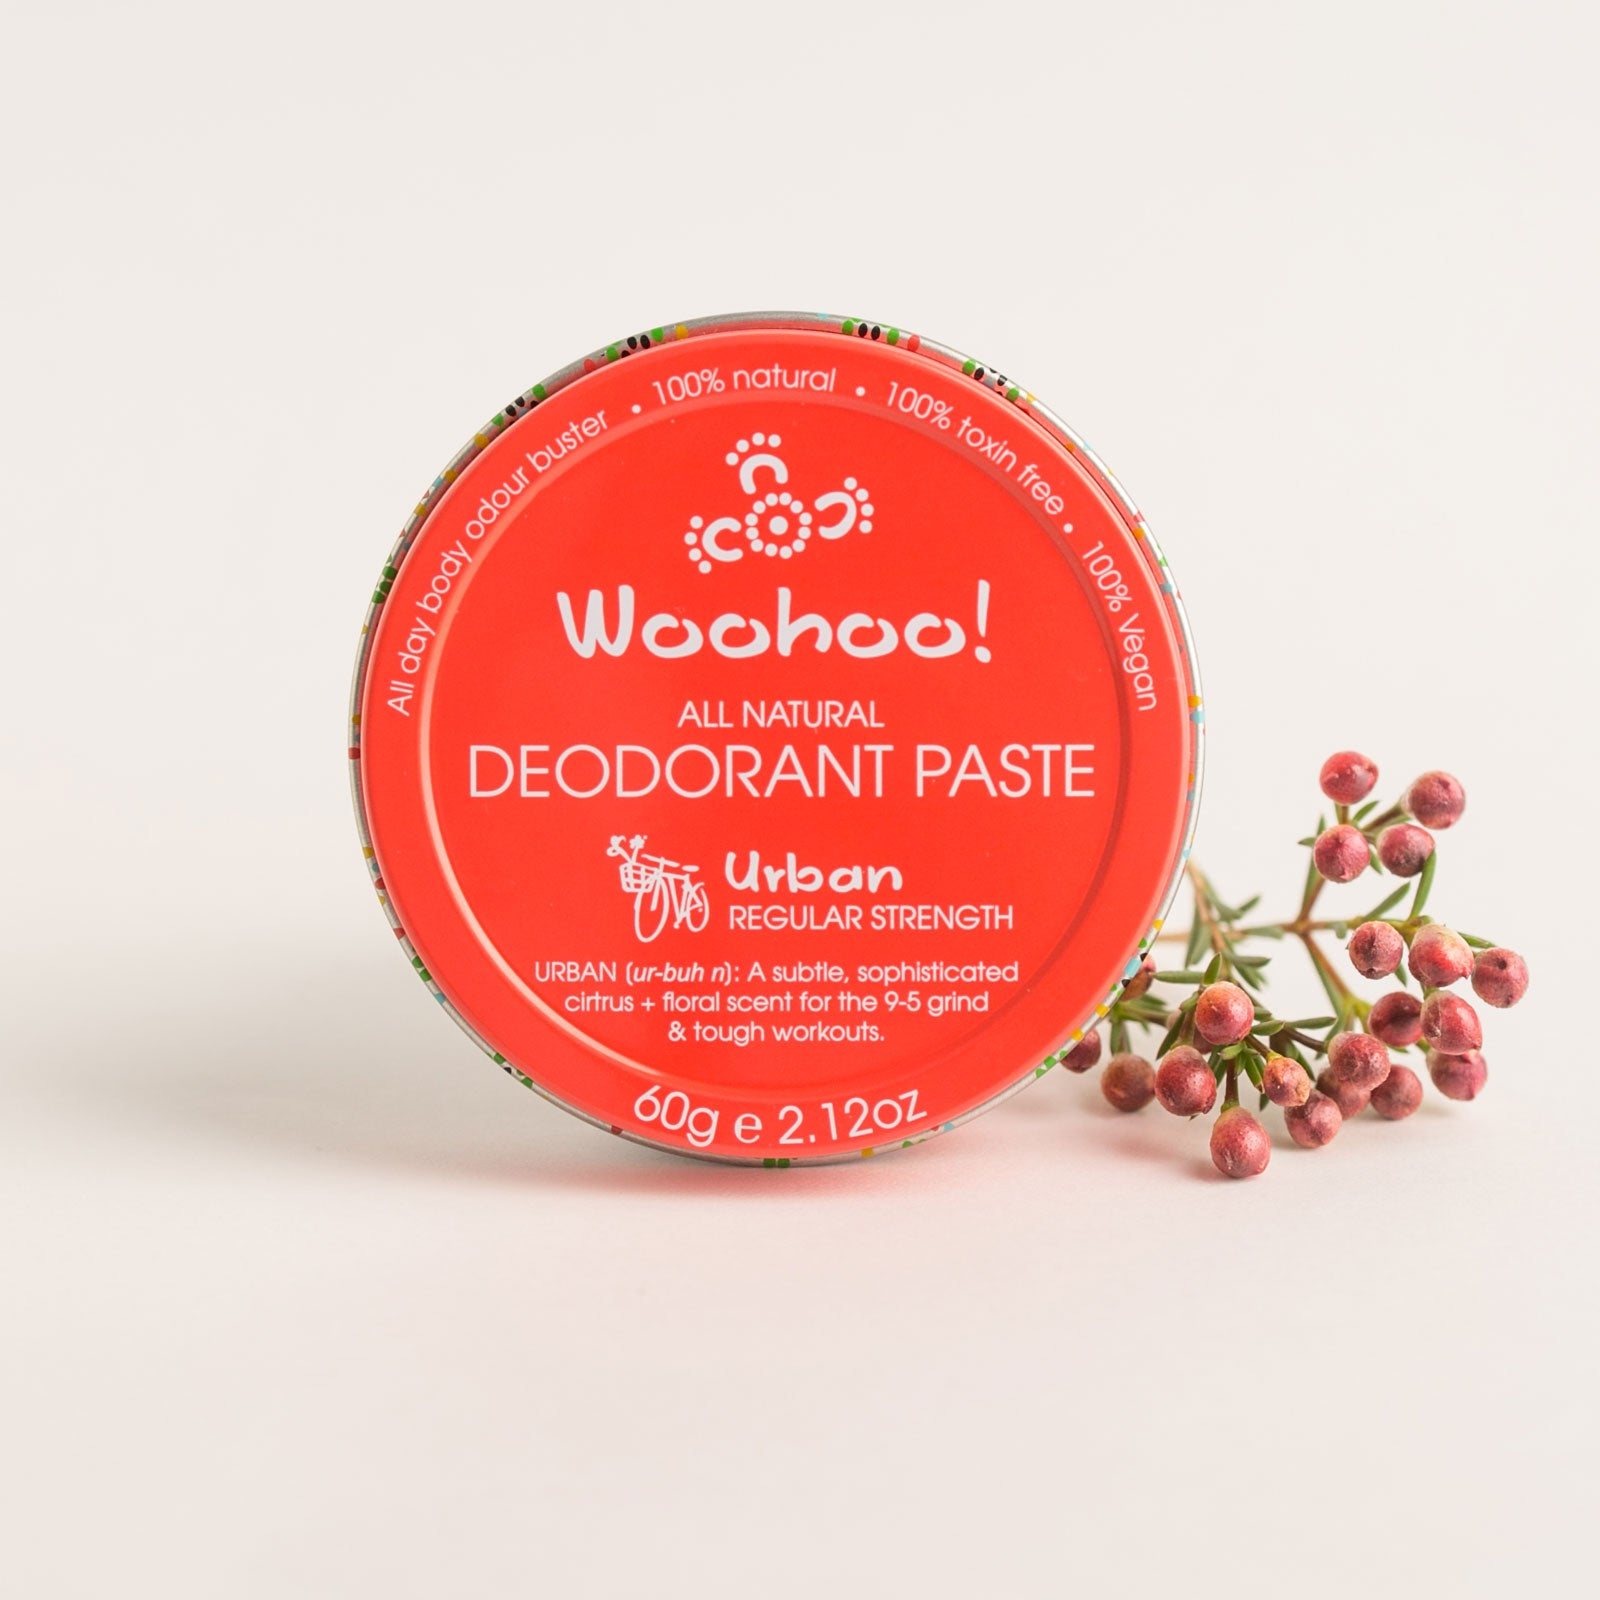 Woohoo All Natural Deodorant Paste (Urban)